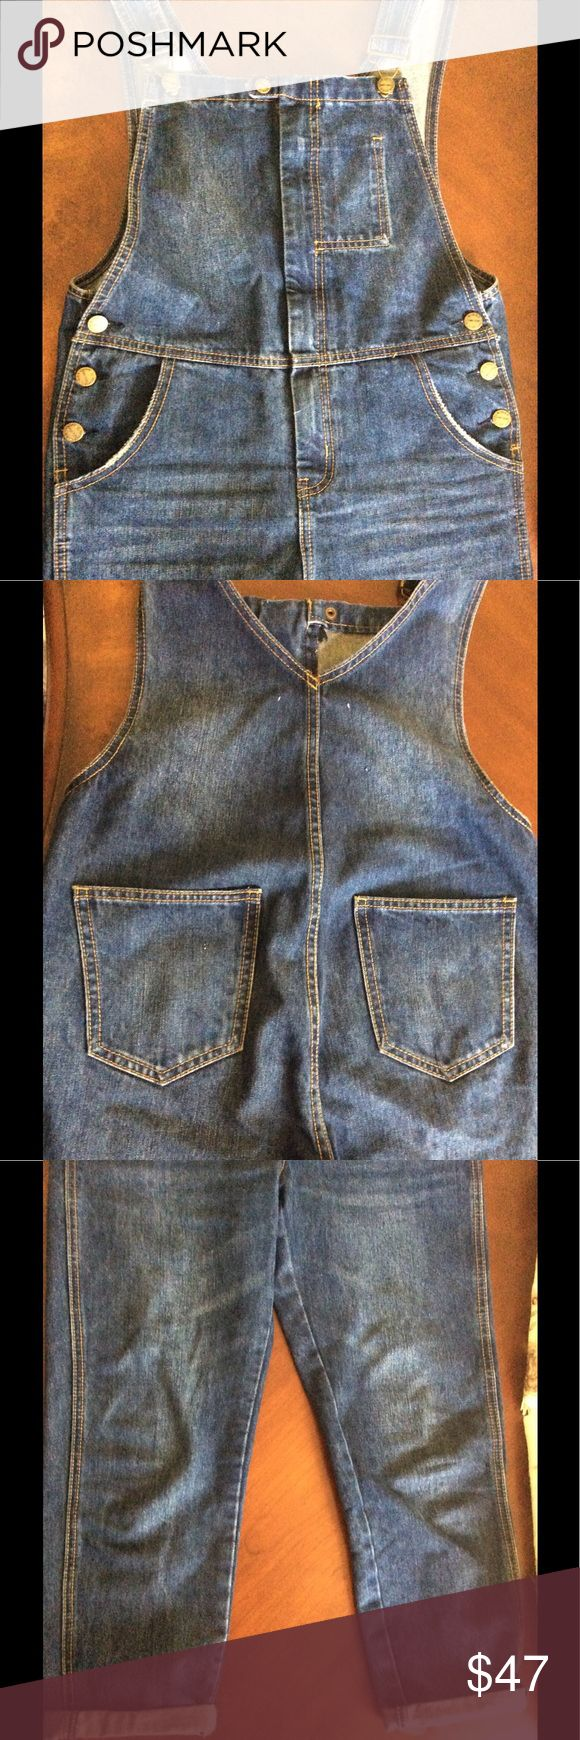 American Apparel Denim Coveralls American Apparel Women's Denim Coveralls.. Size Medium (Pre-loved) NO STAINS, NO TEARS! PRICE IS FIRM.. American Apparel Jeans Overalls